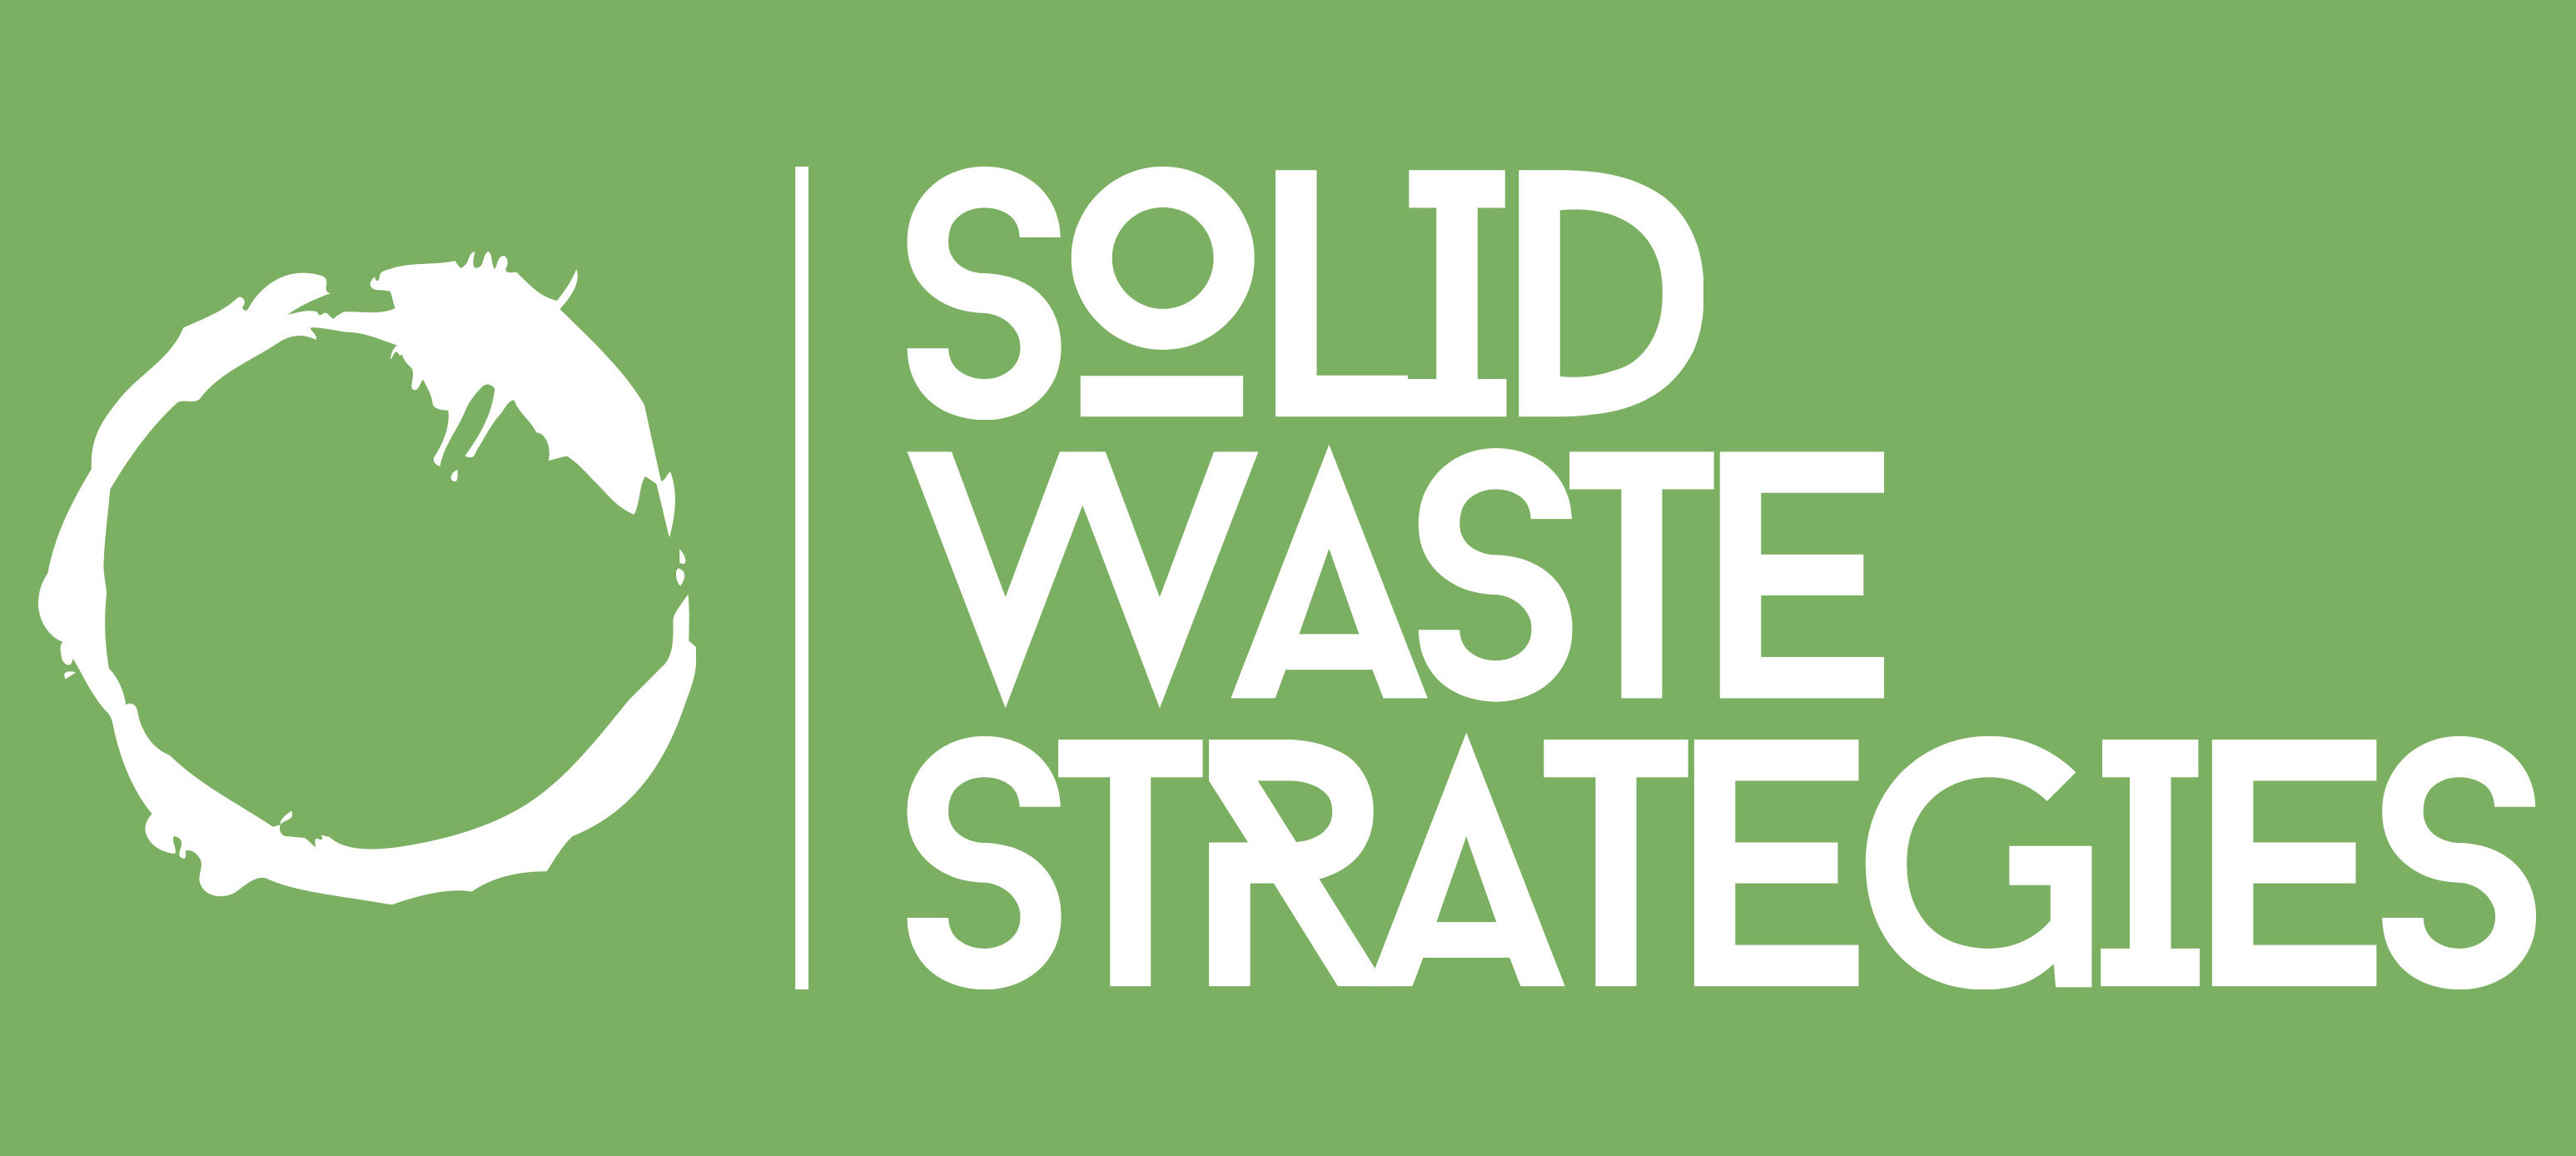 Solid Waste Strategies